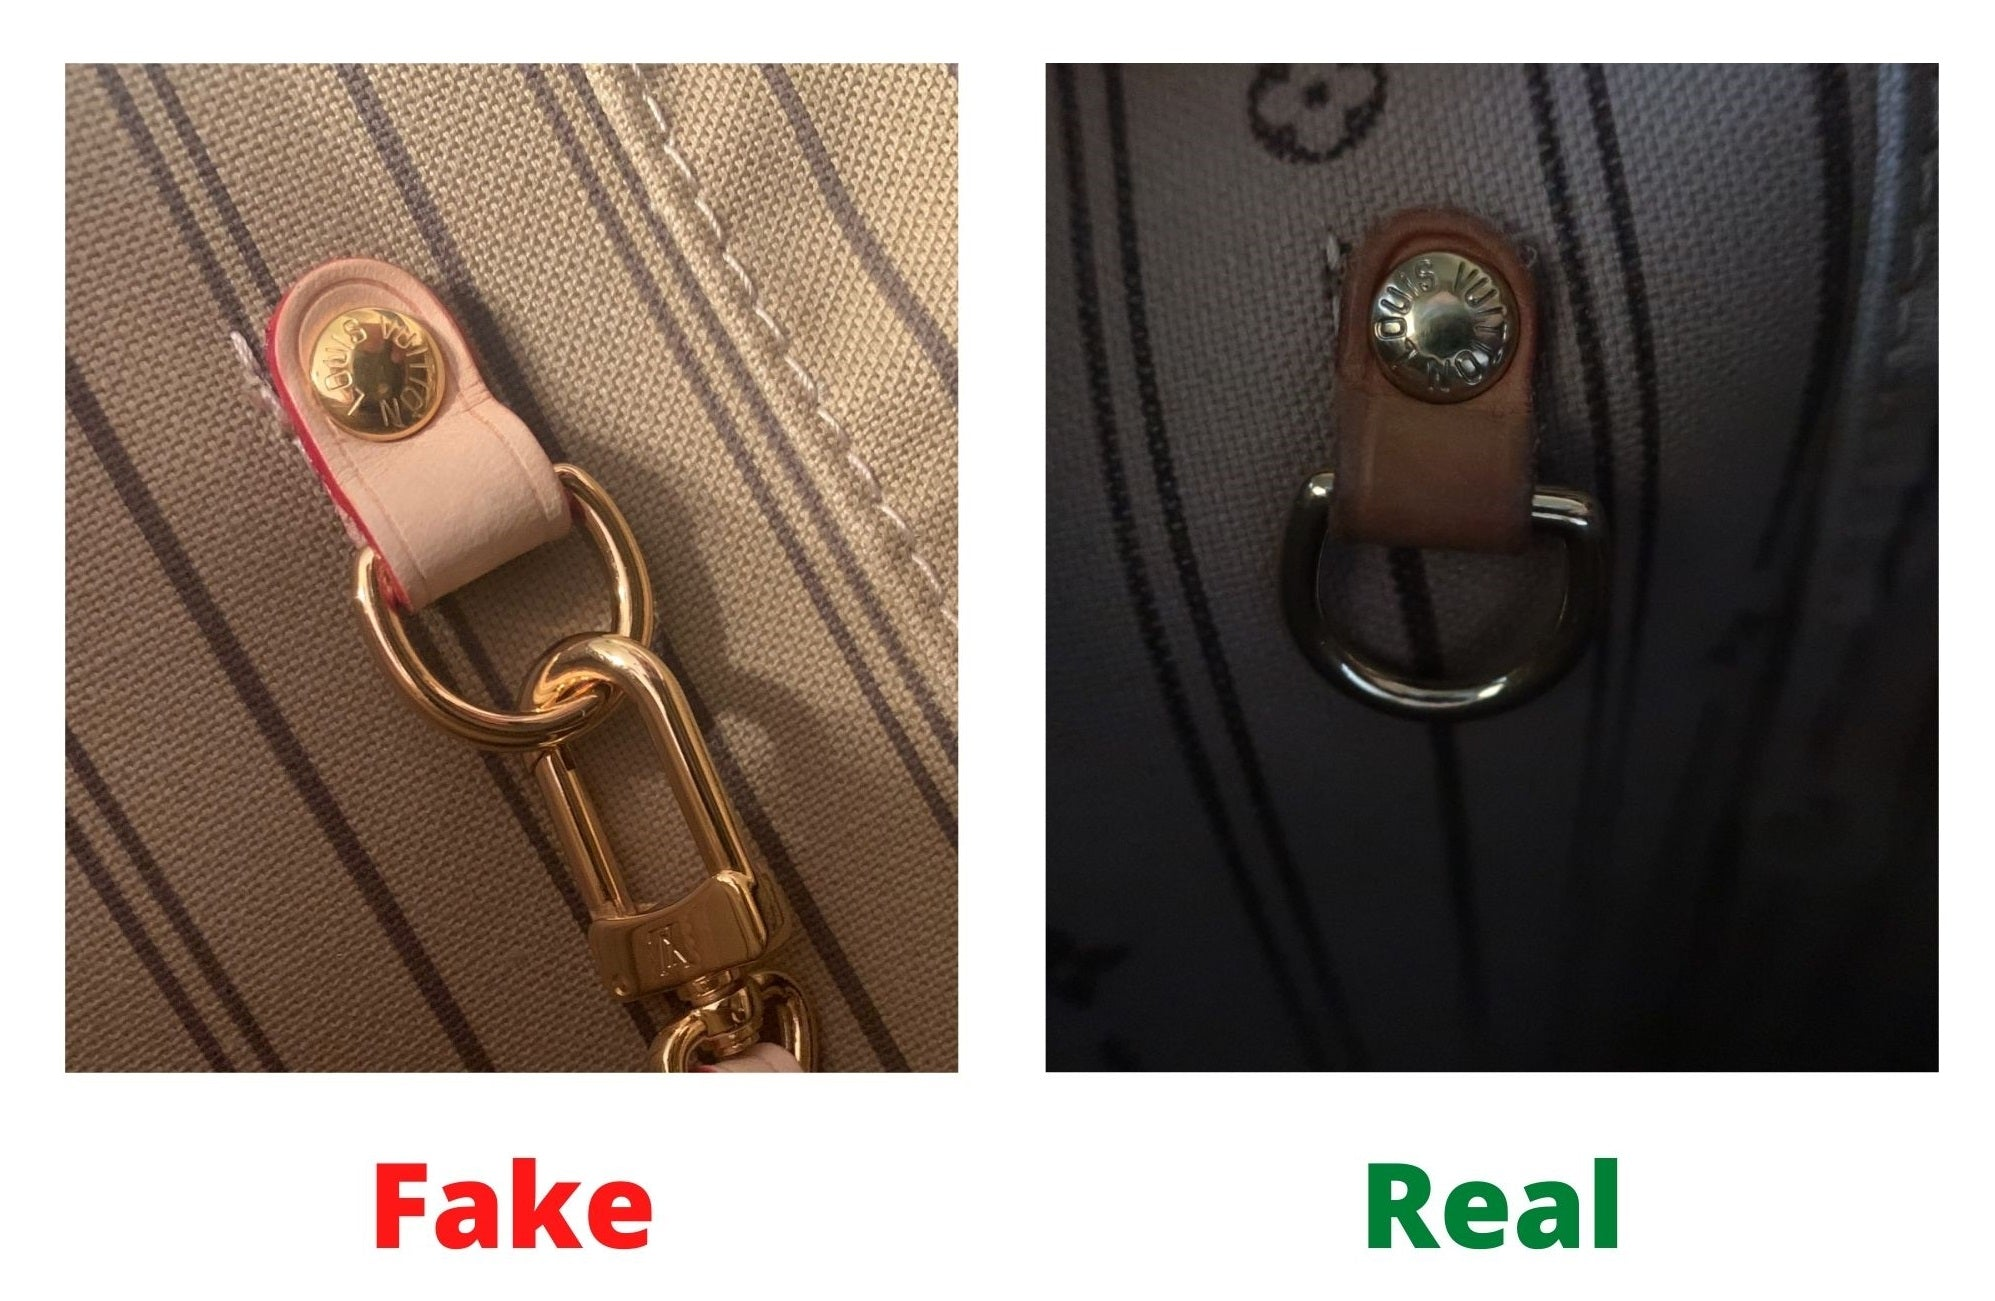 Fake Louis Vuitton Neverfull vs Real: Important Details You Should Definitely Pay Attention To (With Photo Examples) Fake vs Real Neverfull Monogram internal element